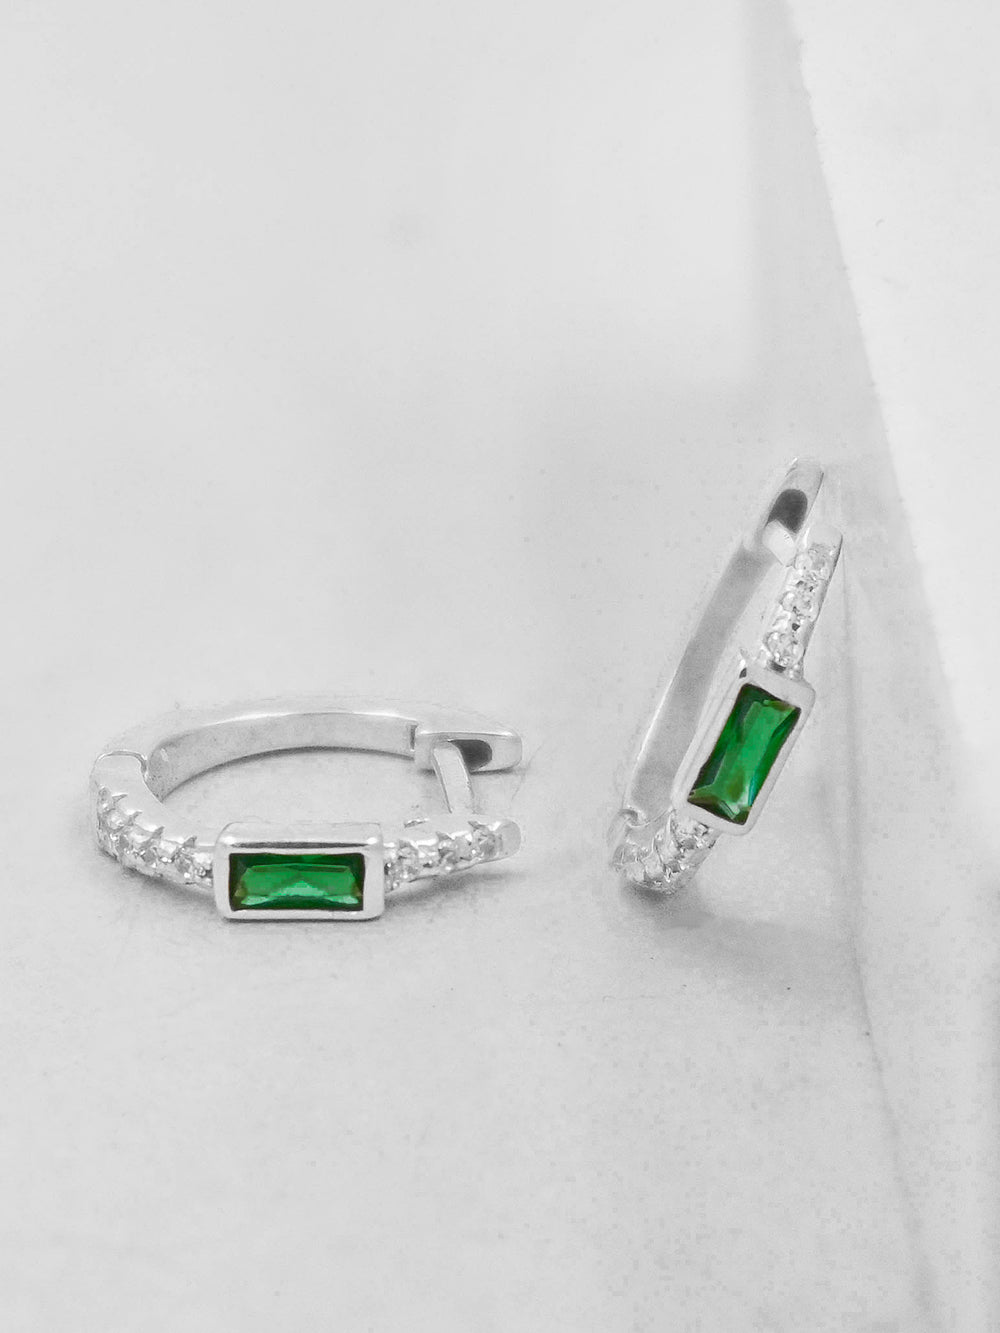 Rhodium Plated Emerald Green CZ baguette Huggies Earrings by The Faint Hearted Jewelry